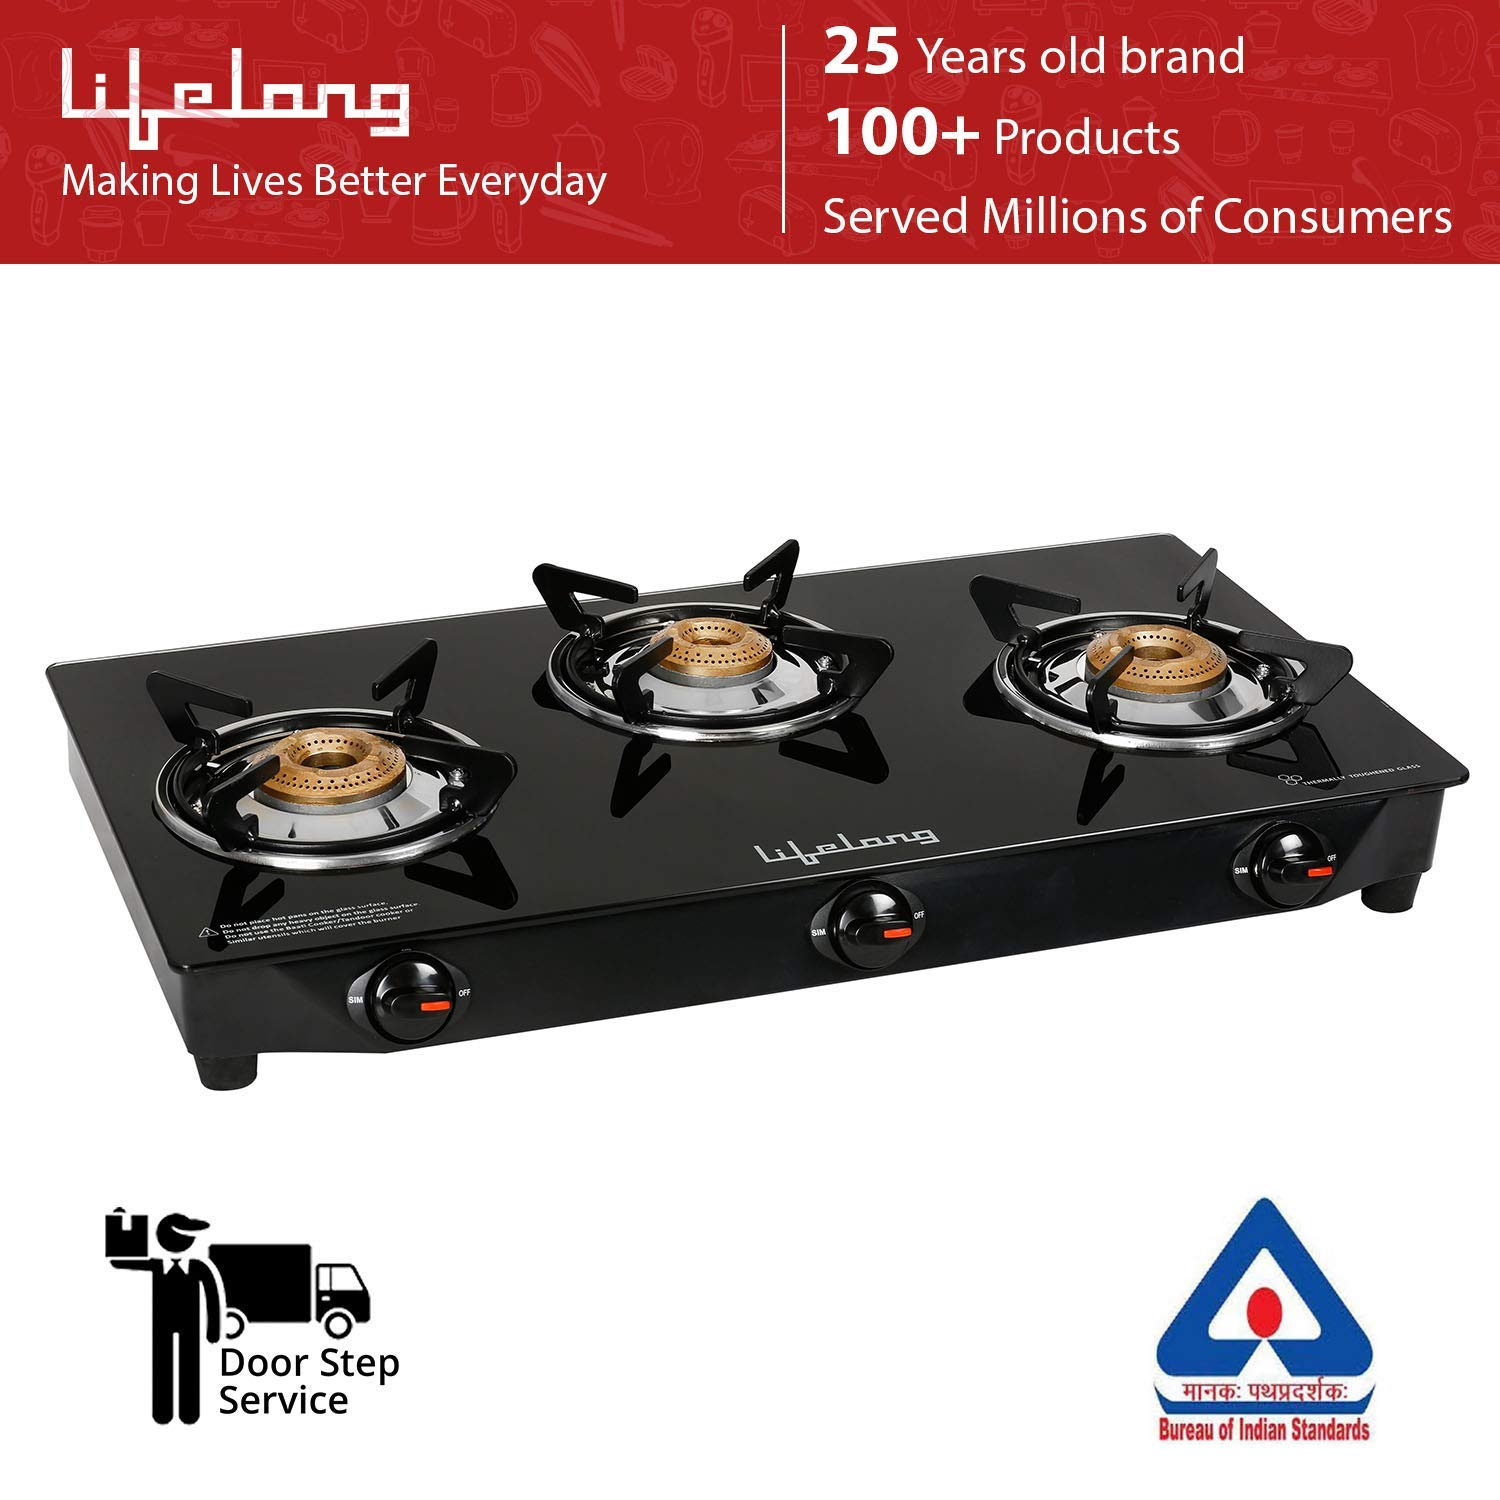 Lifelong Glass Top Gas Stove, 3 Burner Gas Stove, 1 year warranty with Doorstep Service